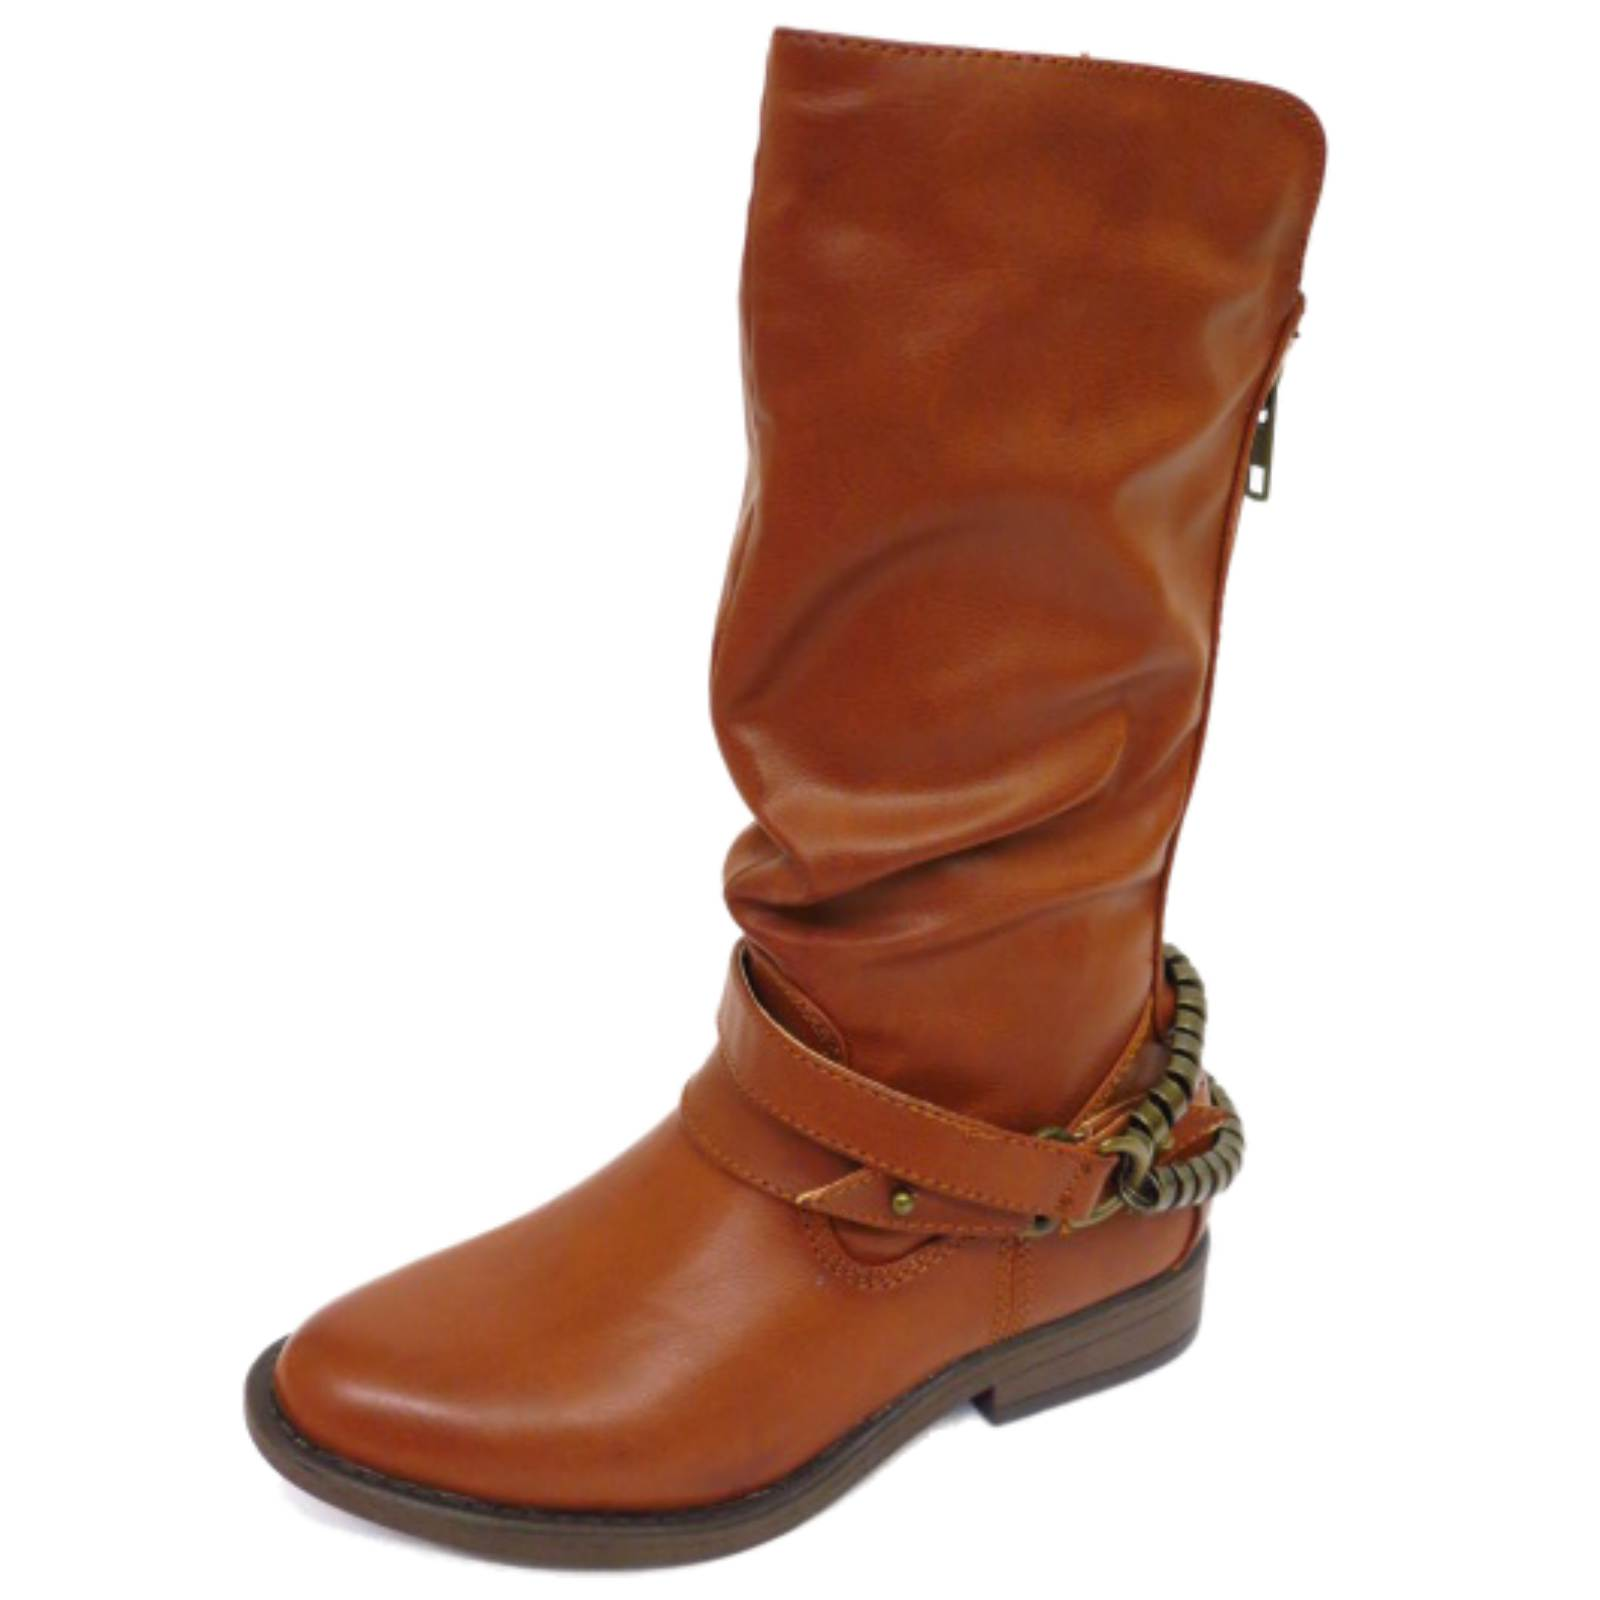 Kids flat heel roper boots are a hit with all kids, whether they ride horses or not. Roper boots for kids are not just functional for the western riders, they are fashionable and comfortable for kids of all ages.